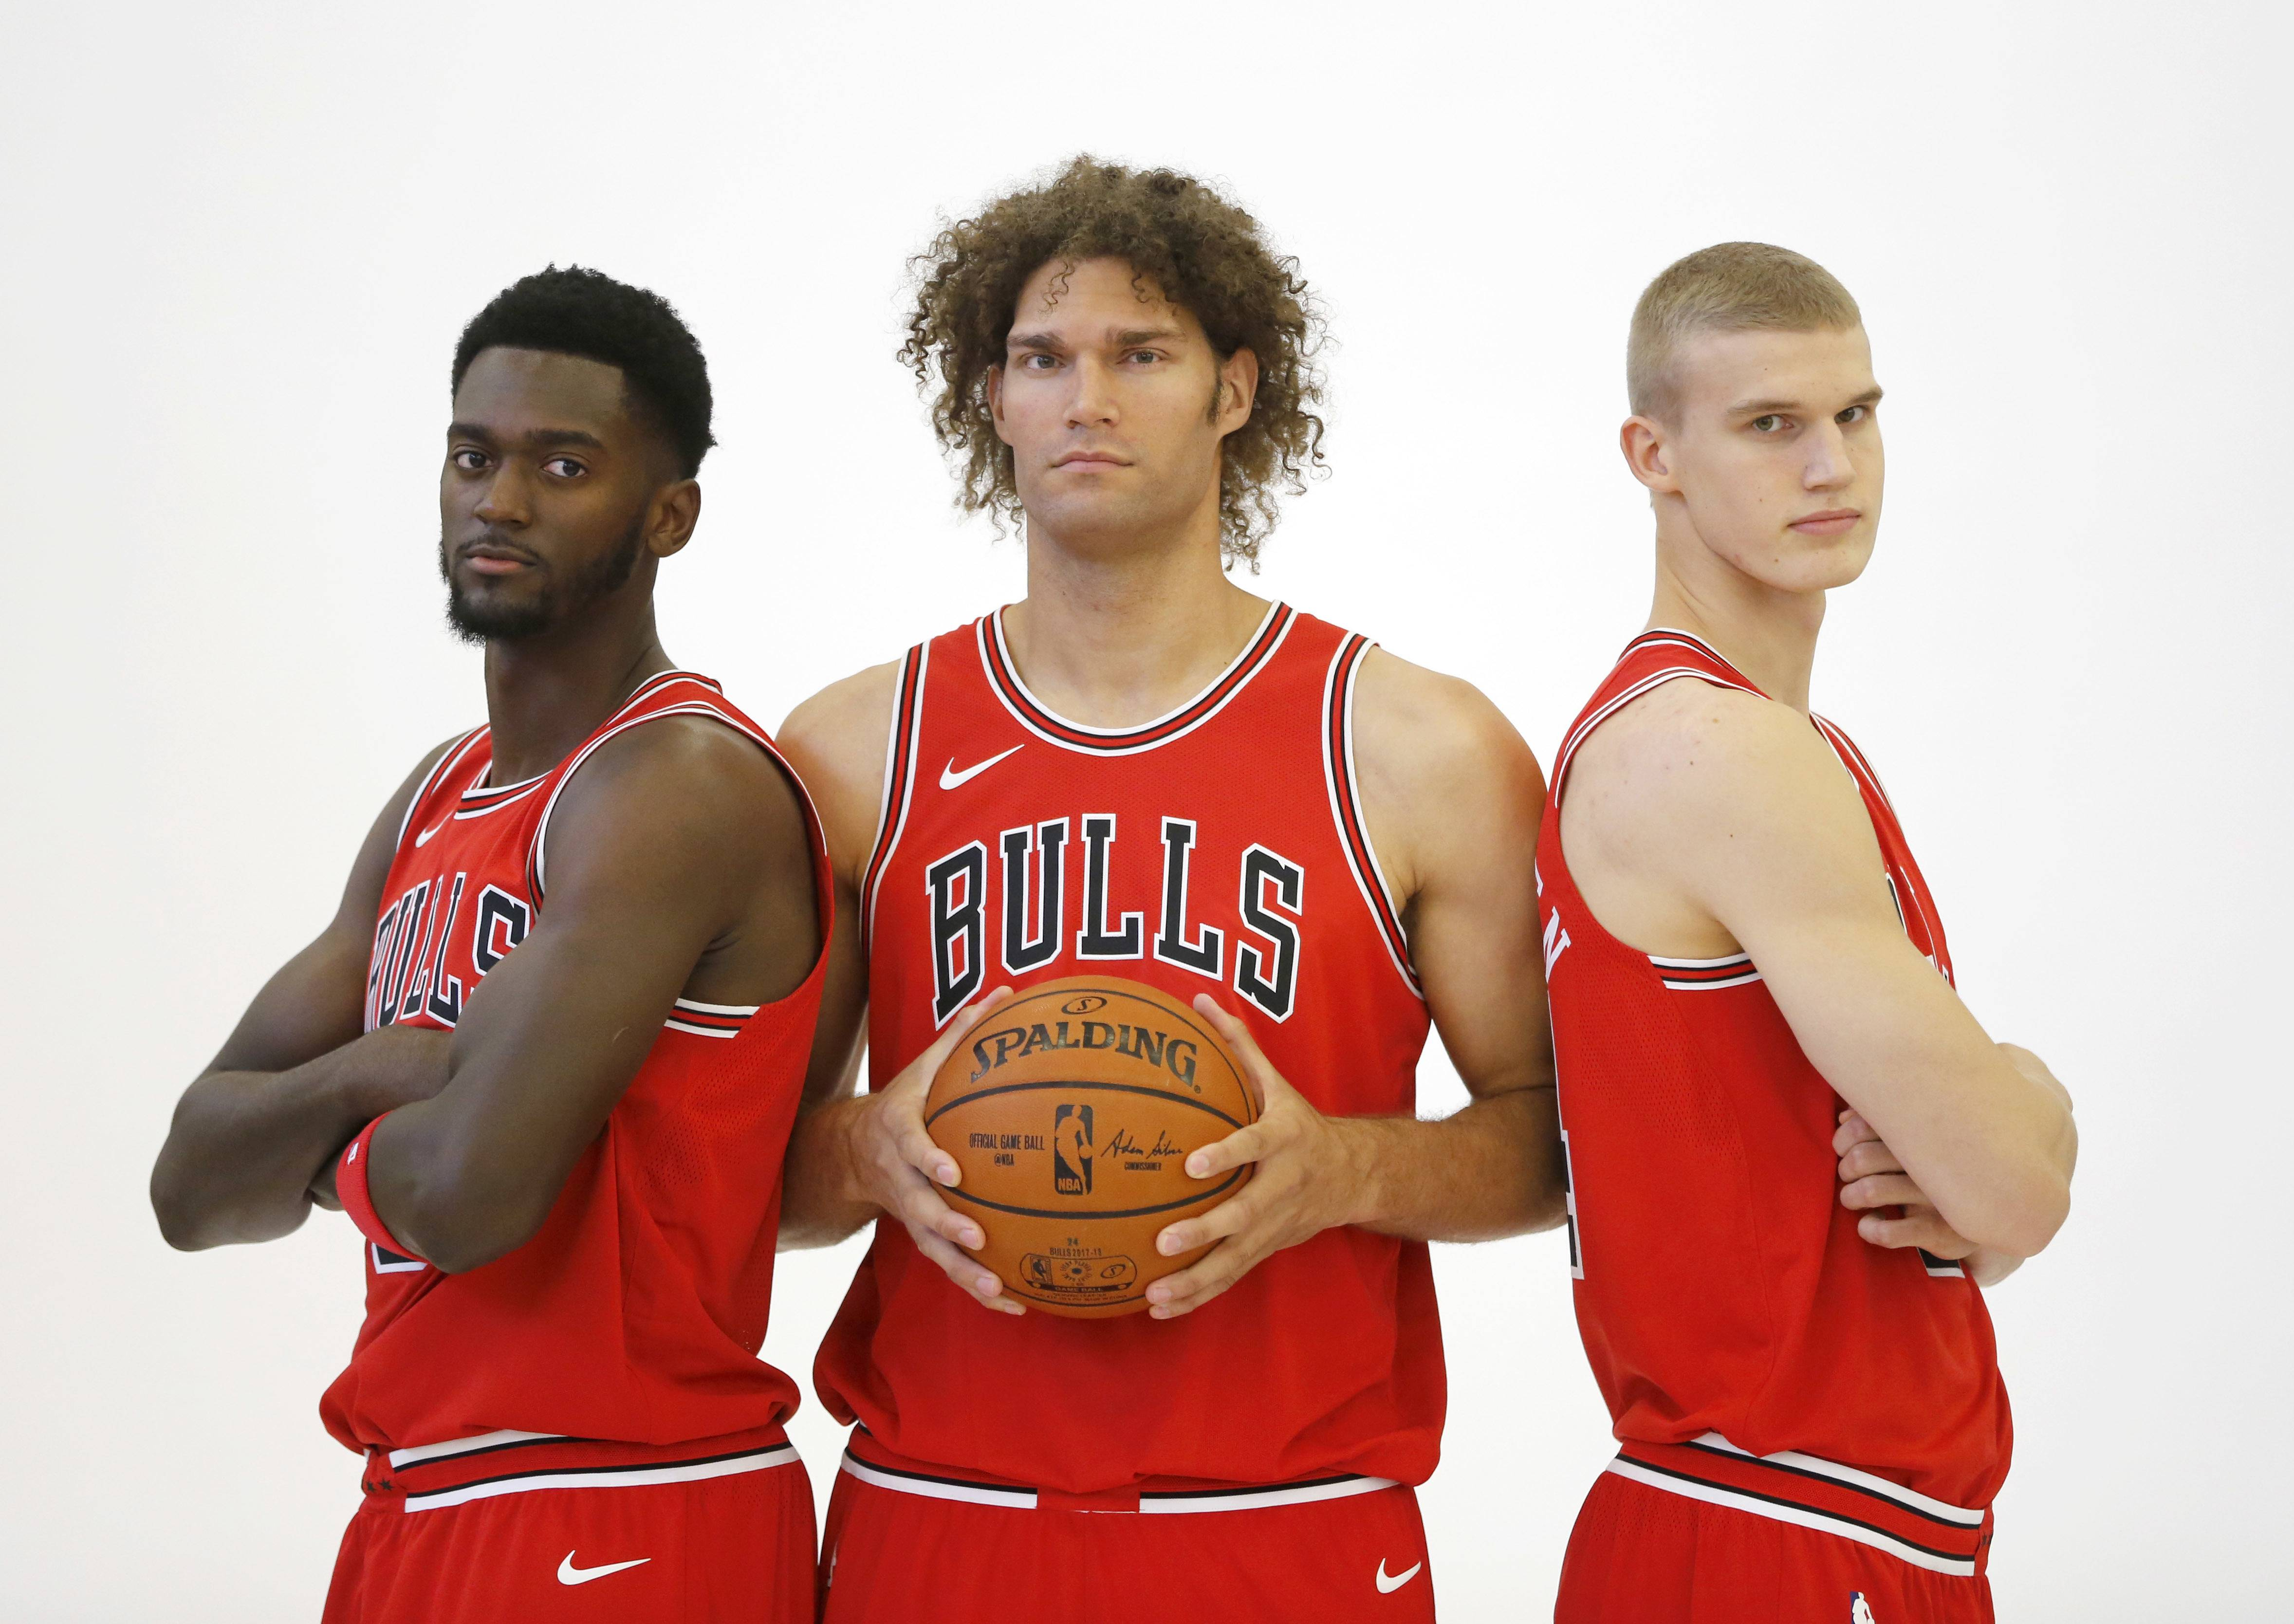 Chicago Bulls' Bobby Portis, left, Robin Lopez, center, and Lauri Markkanen pose for a portrait during media day for the NBA basketball team Monday, Sept. 25, 2017, in Chicago. (AP Photo/Charles Rex Arbogast)